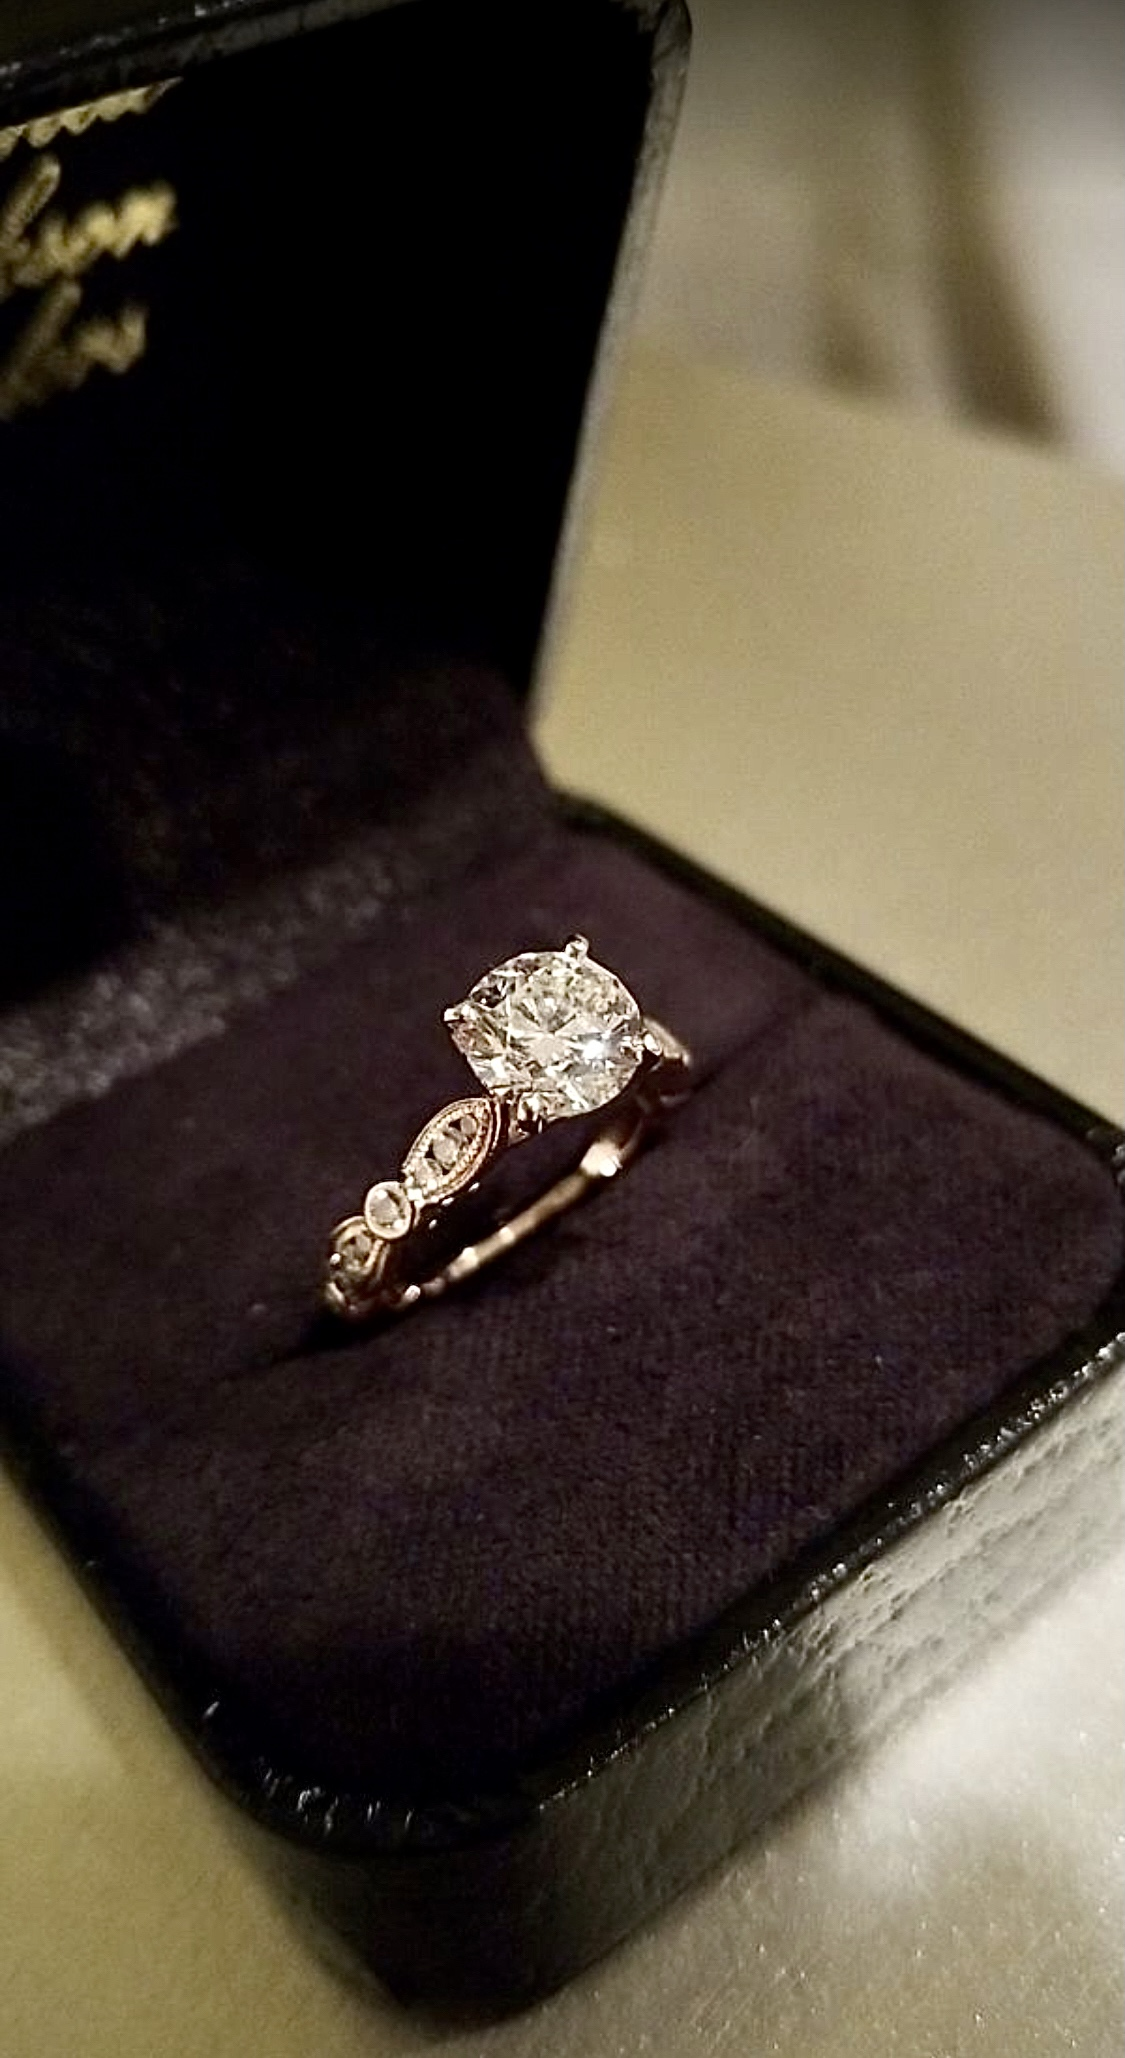 1.79ct Total (1.50ct Round